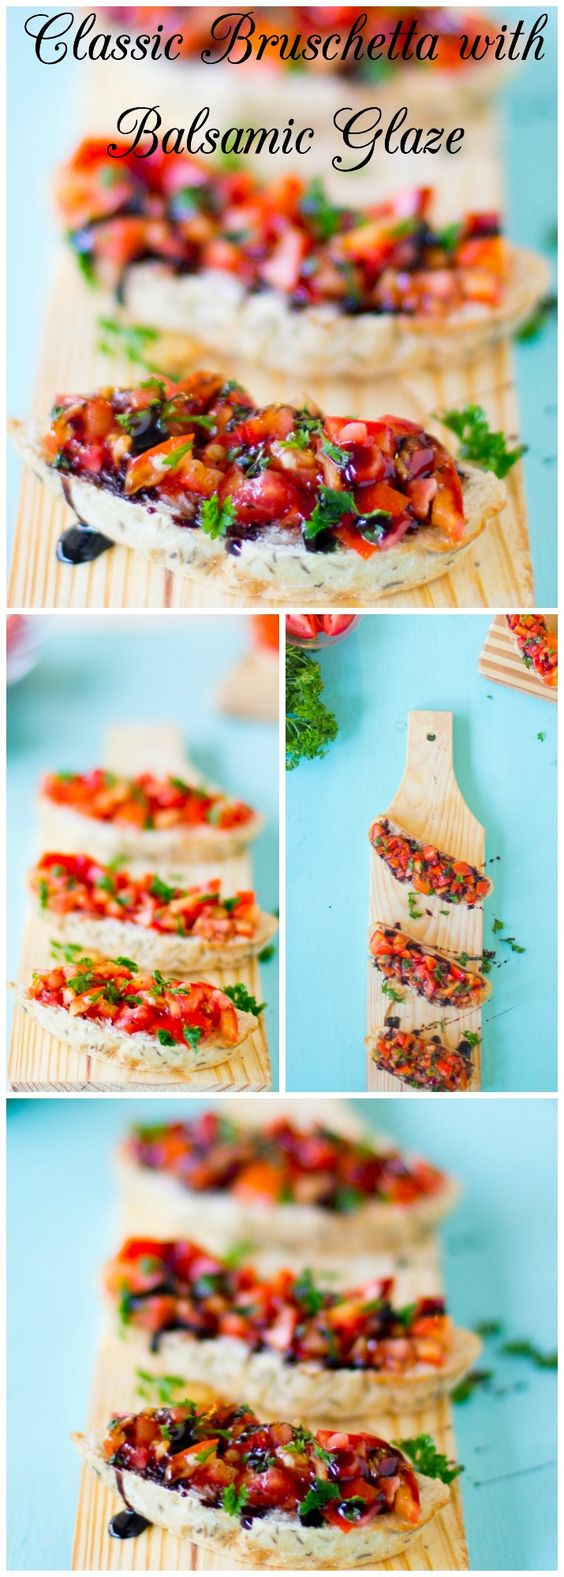 .~Loaded with fresh, juicy tomatoes, this classic Bruschetta with Balsamic Glaze is the perfect appetiser for hot summer days~. @adeleburgess